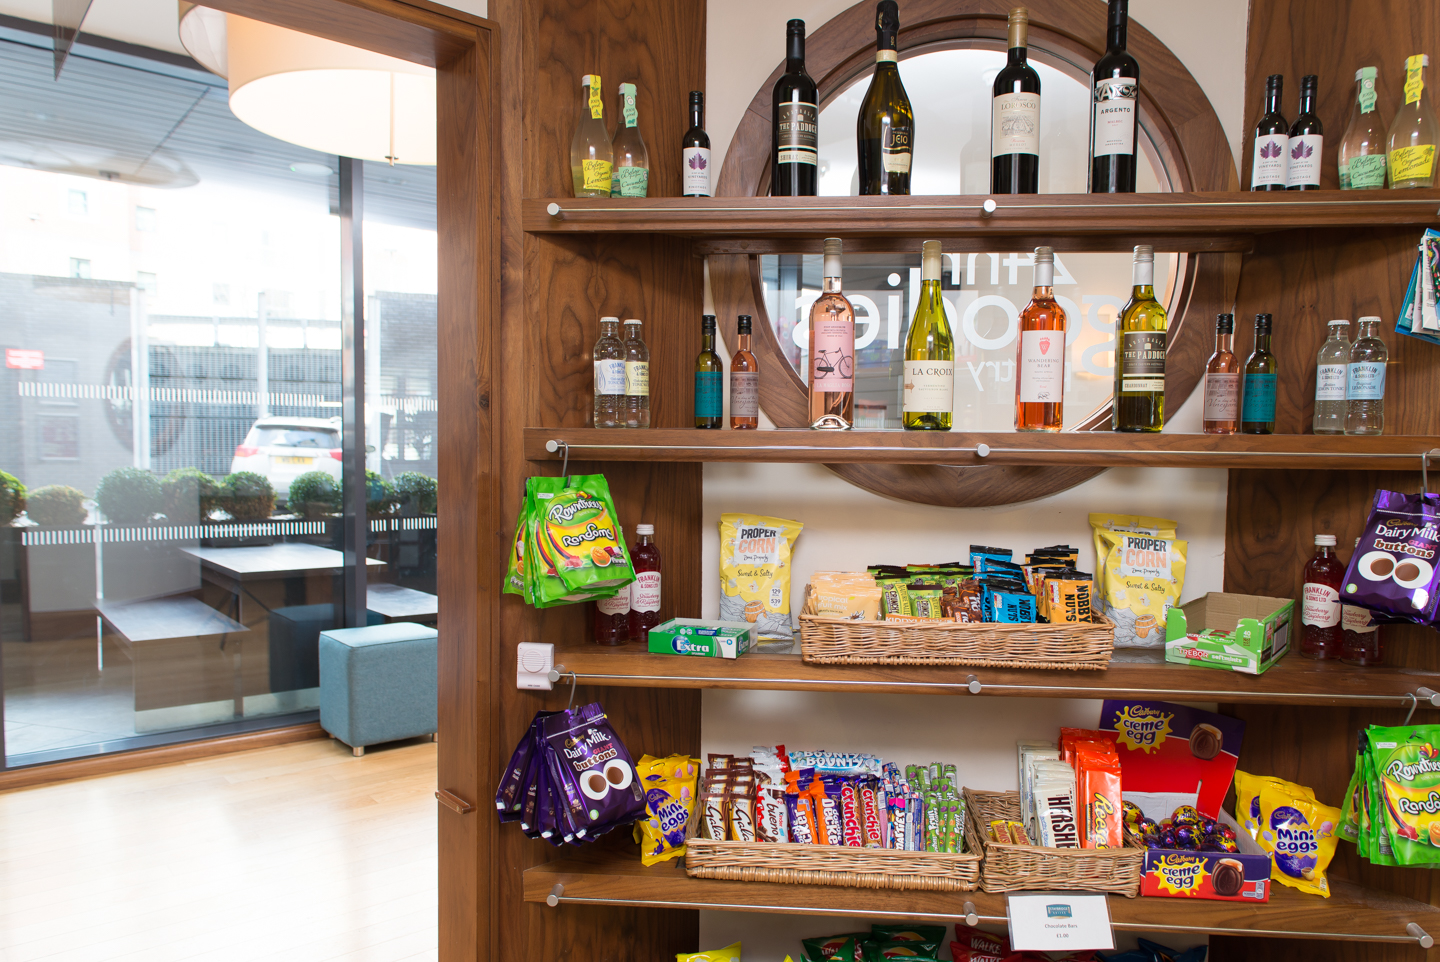 Pantry at Staybridge Suites Newcastle